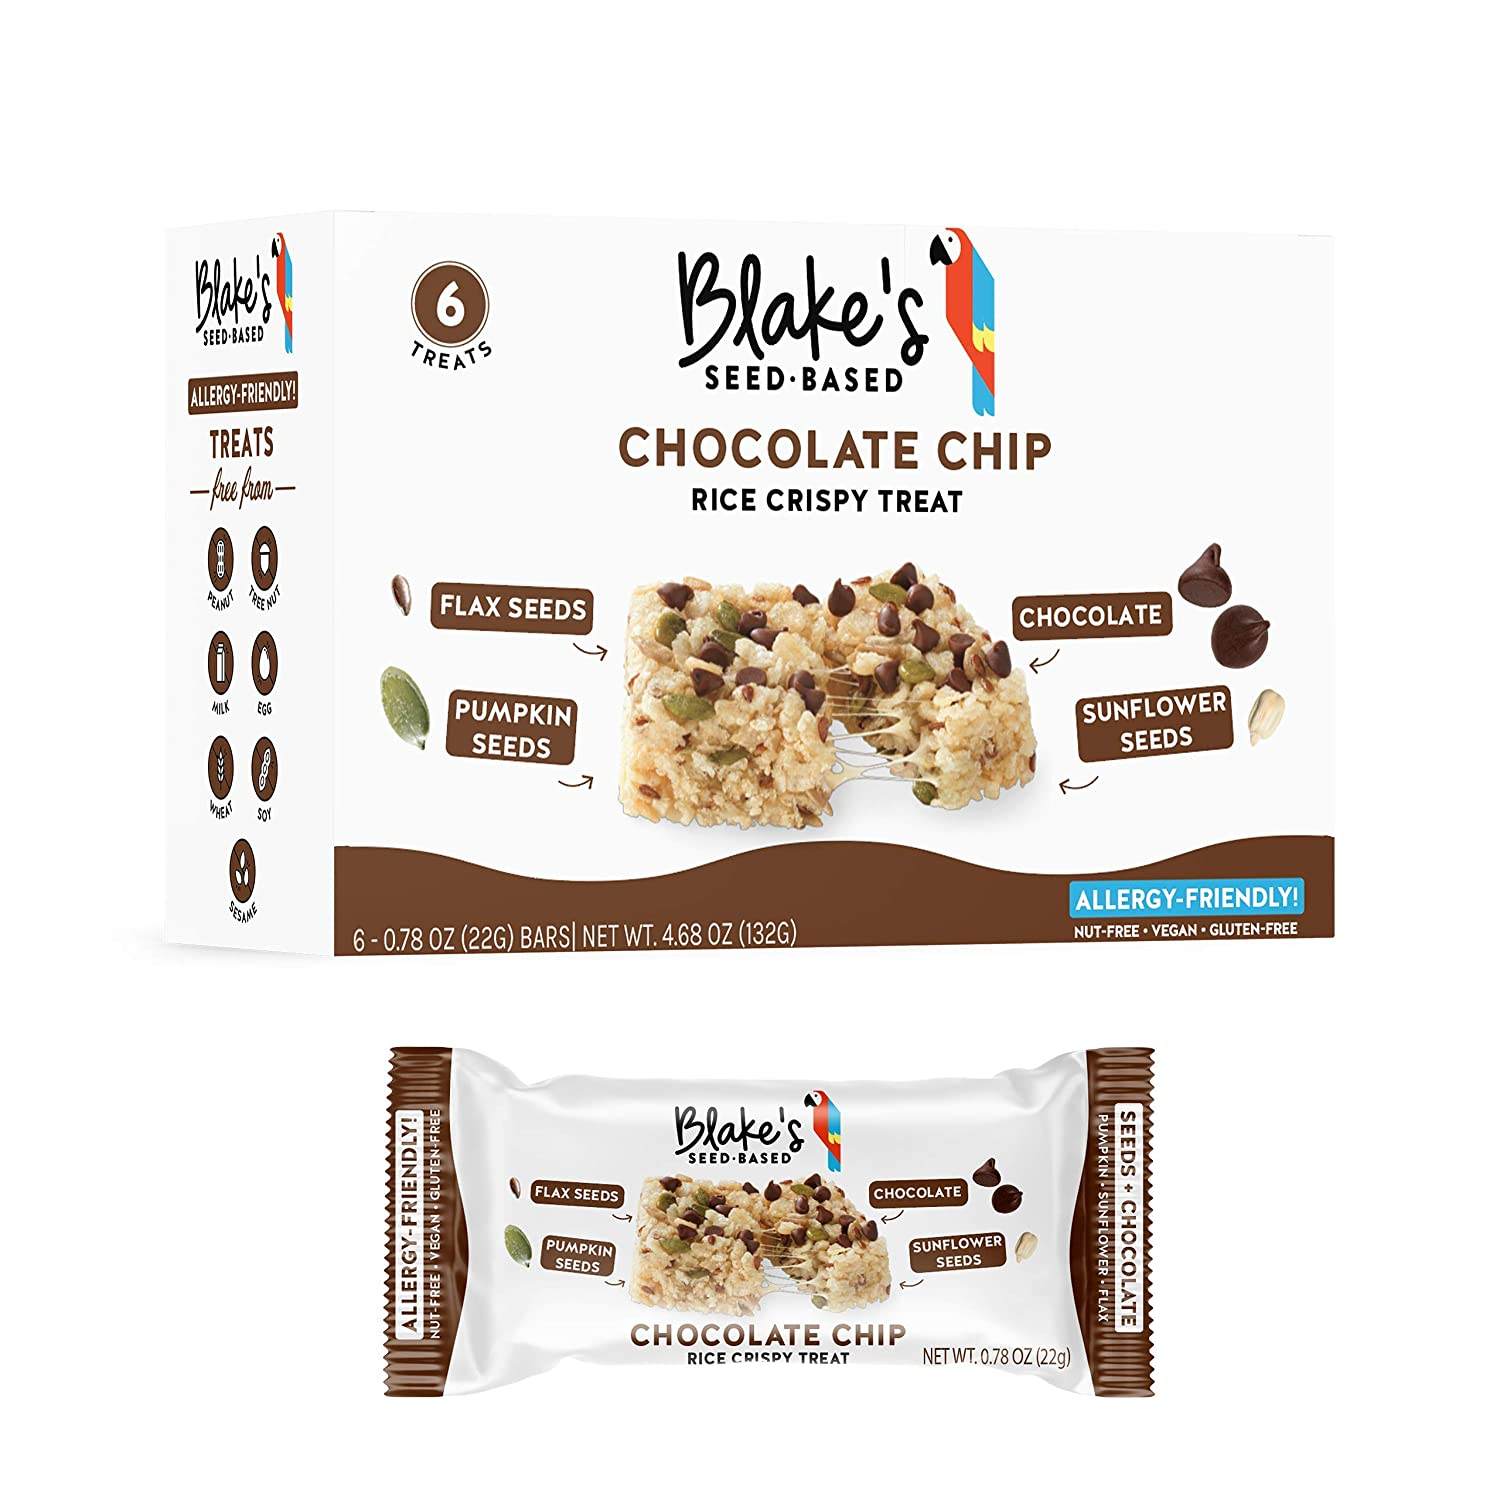 Blake's Seed Based Rice Crispy Treats, Chocolate Chip Flavor, 18 count, Top 8 Allergy Free, Vegan, Nut Free, Gluten Free, 3 Boxes of 6 Bars Each